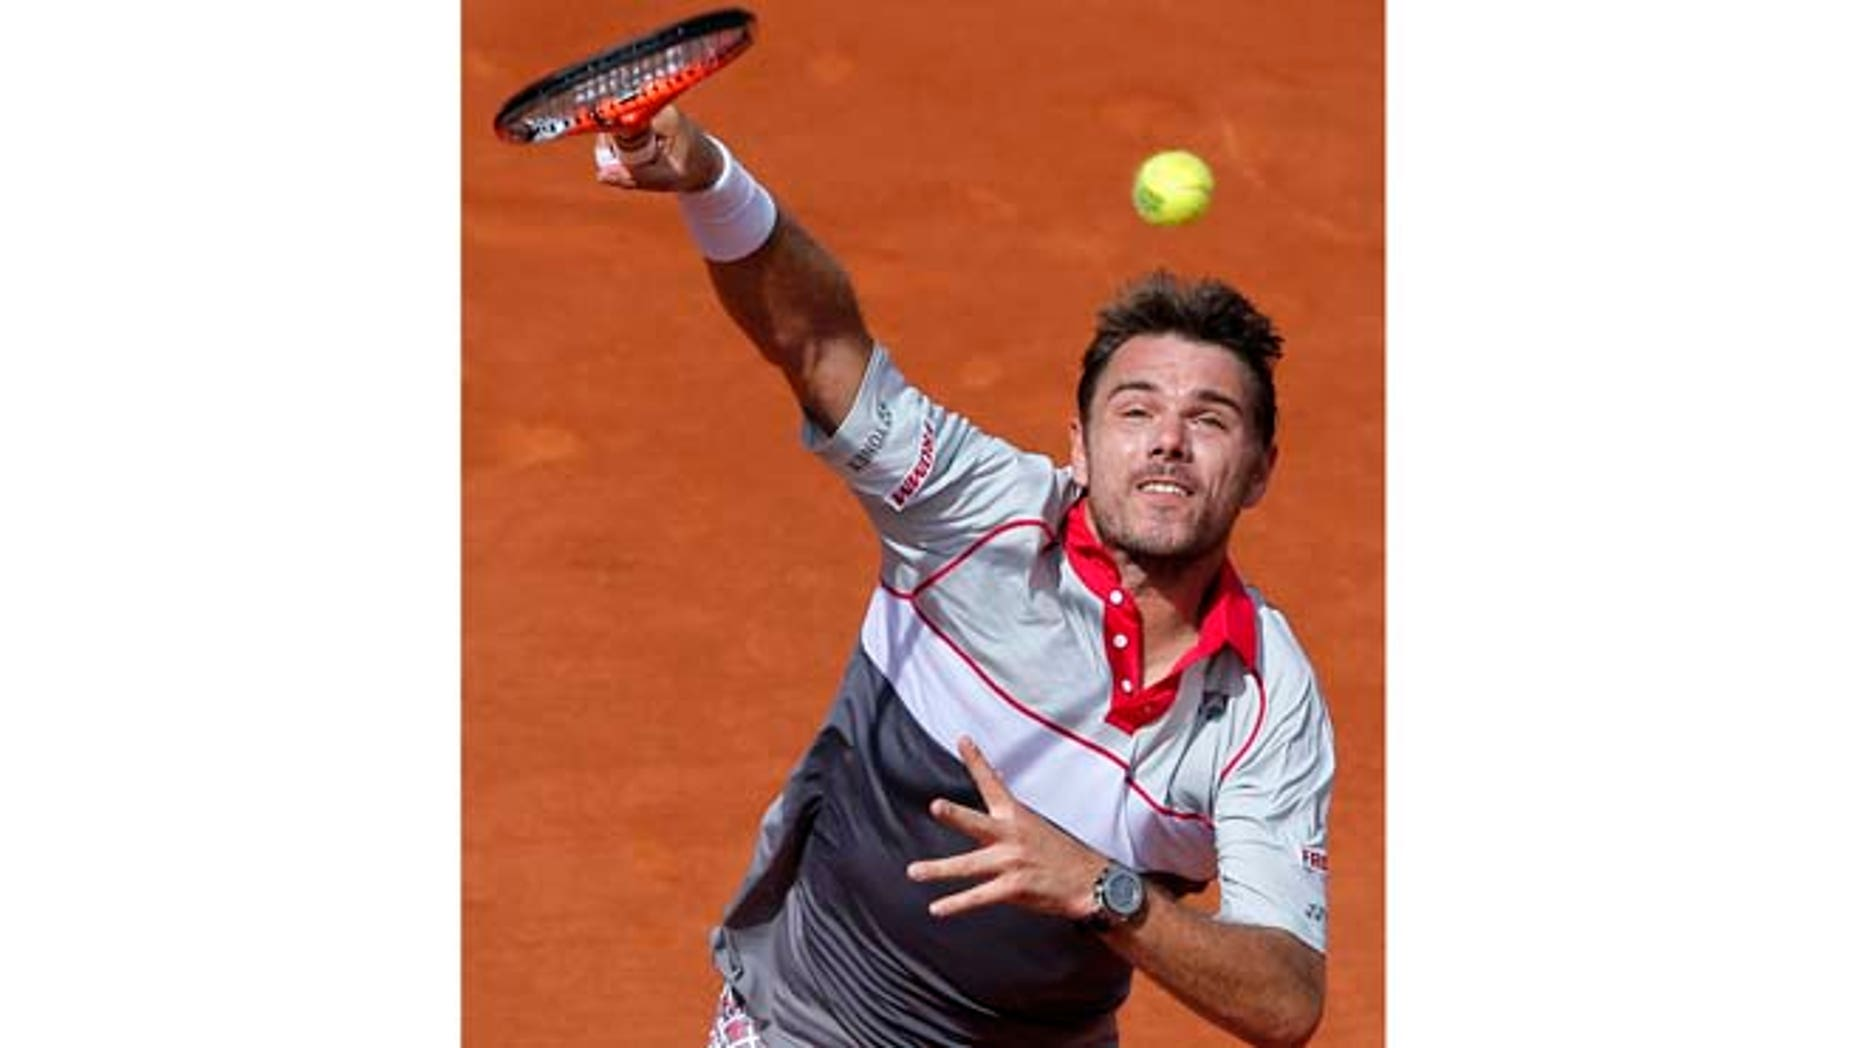 June 7, 2015: Switzerland's Stan Wawrinka serves the ball to Serbia's Novak Djokovic  during their final match of the French Open tennis tournament at the Roland Garros stadium in Paris.